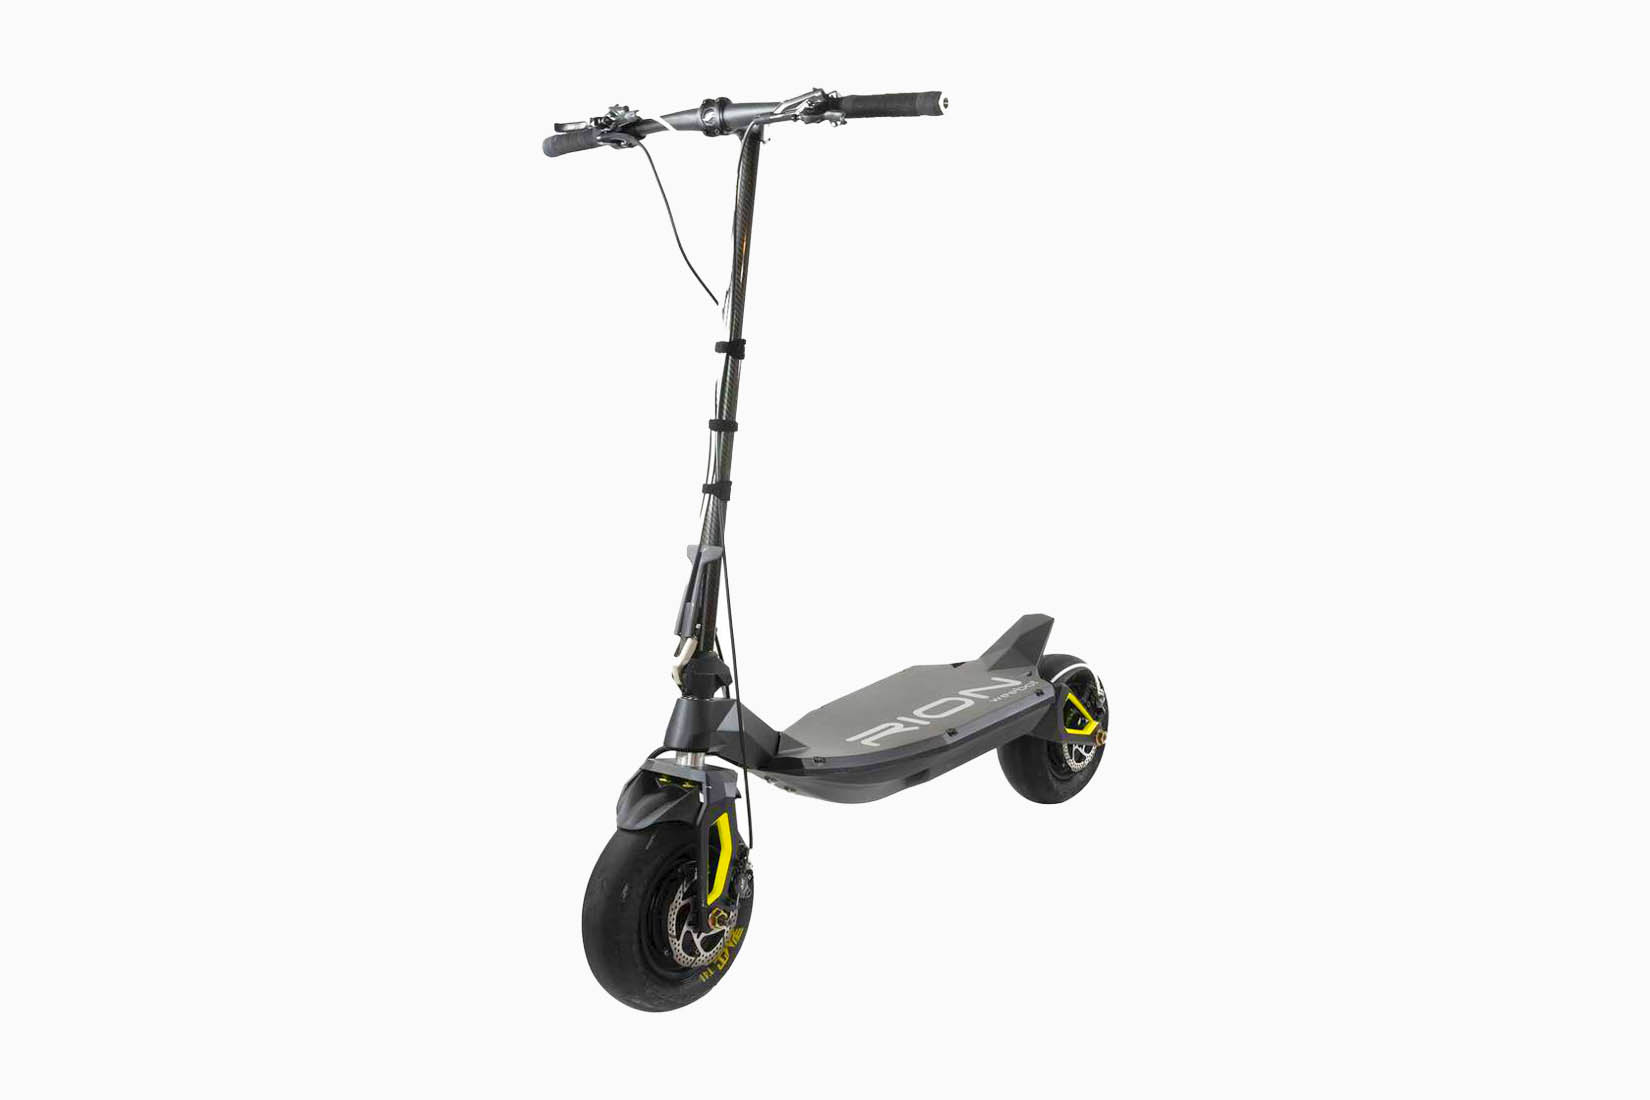 best electric scooter rion RE90 review - Luxe Digital